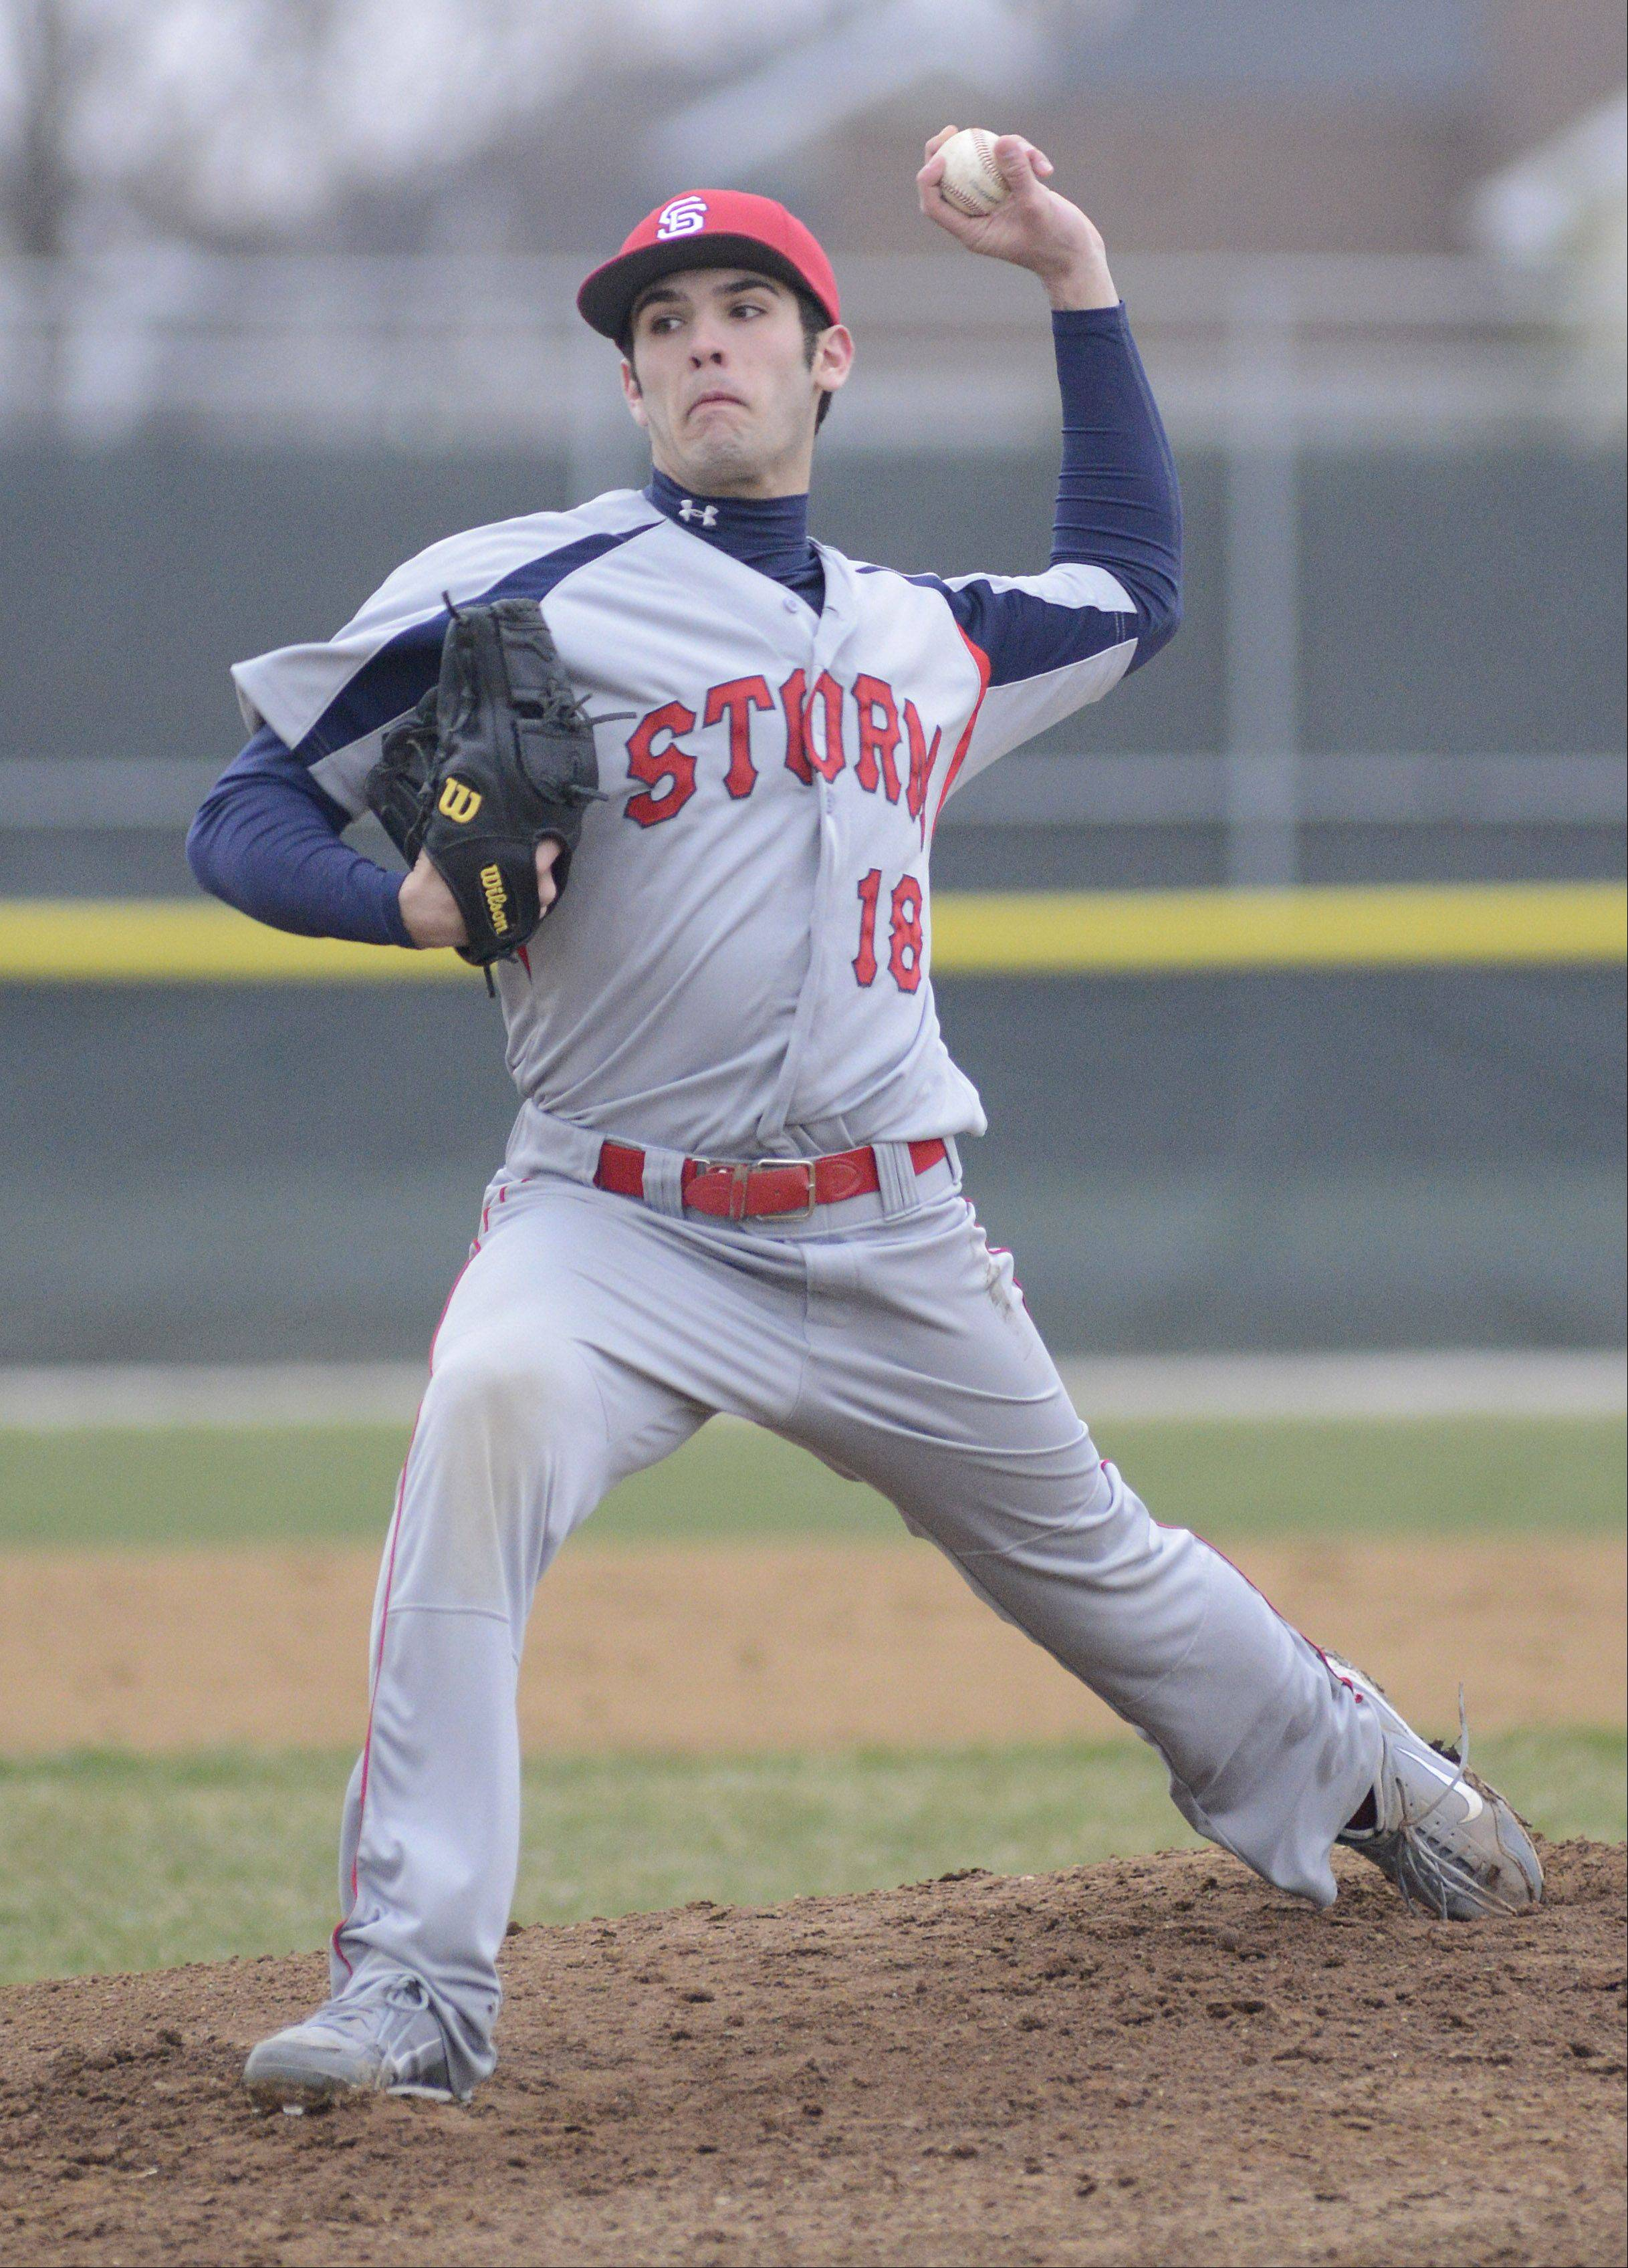 South Elgin pitcher Joe Crivolio on Friday, April 12.